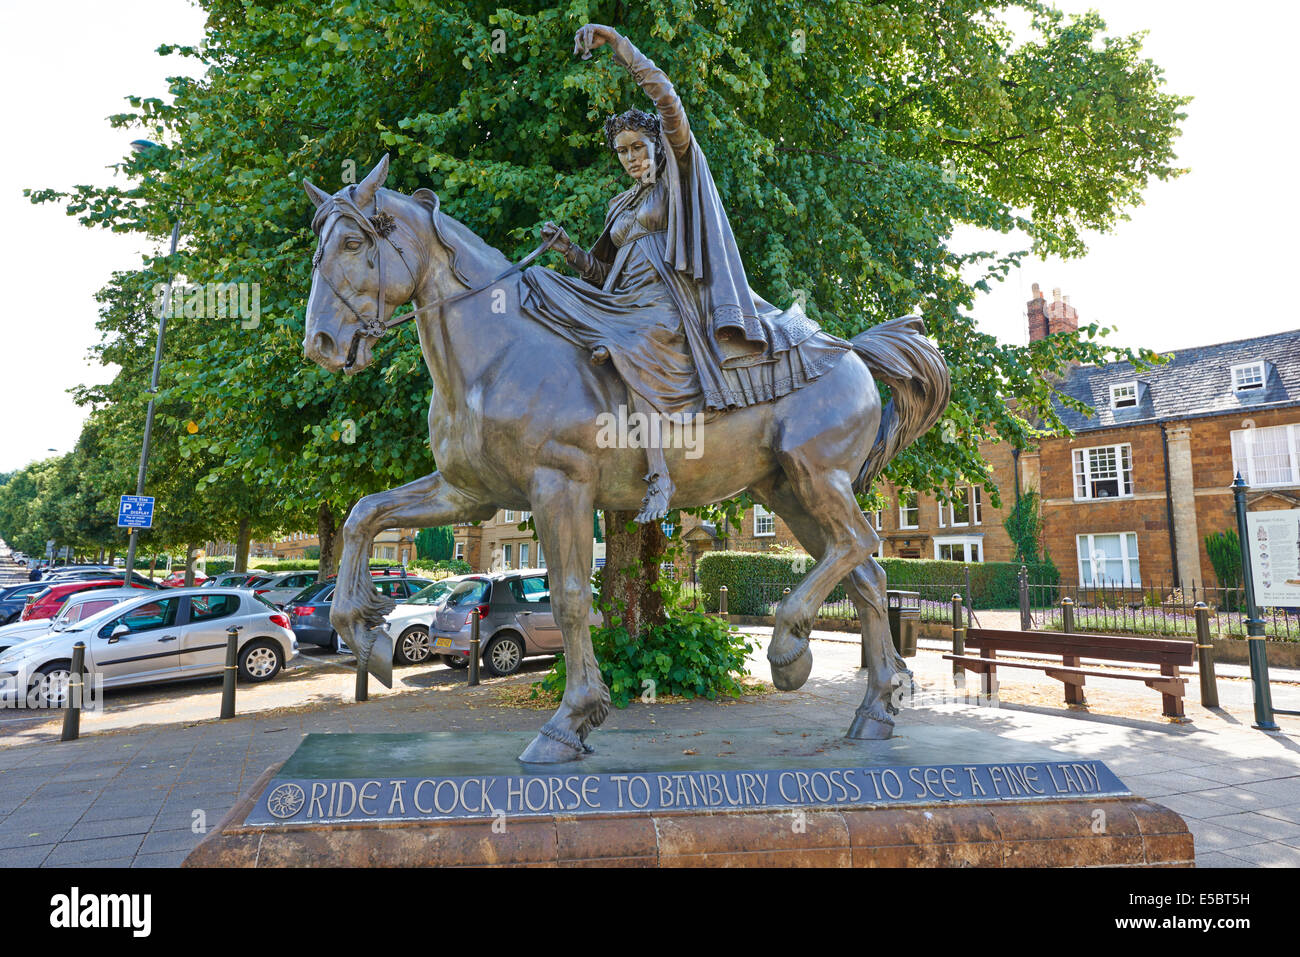 The Fine Lady On A Horse Sculpture By The Cross Banbury Oxfordshire UK - Stock Image